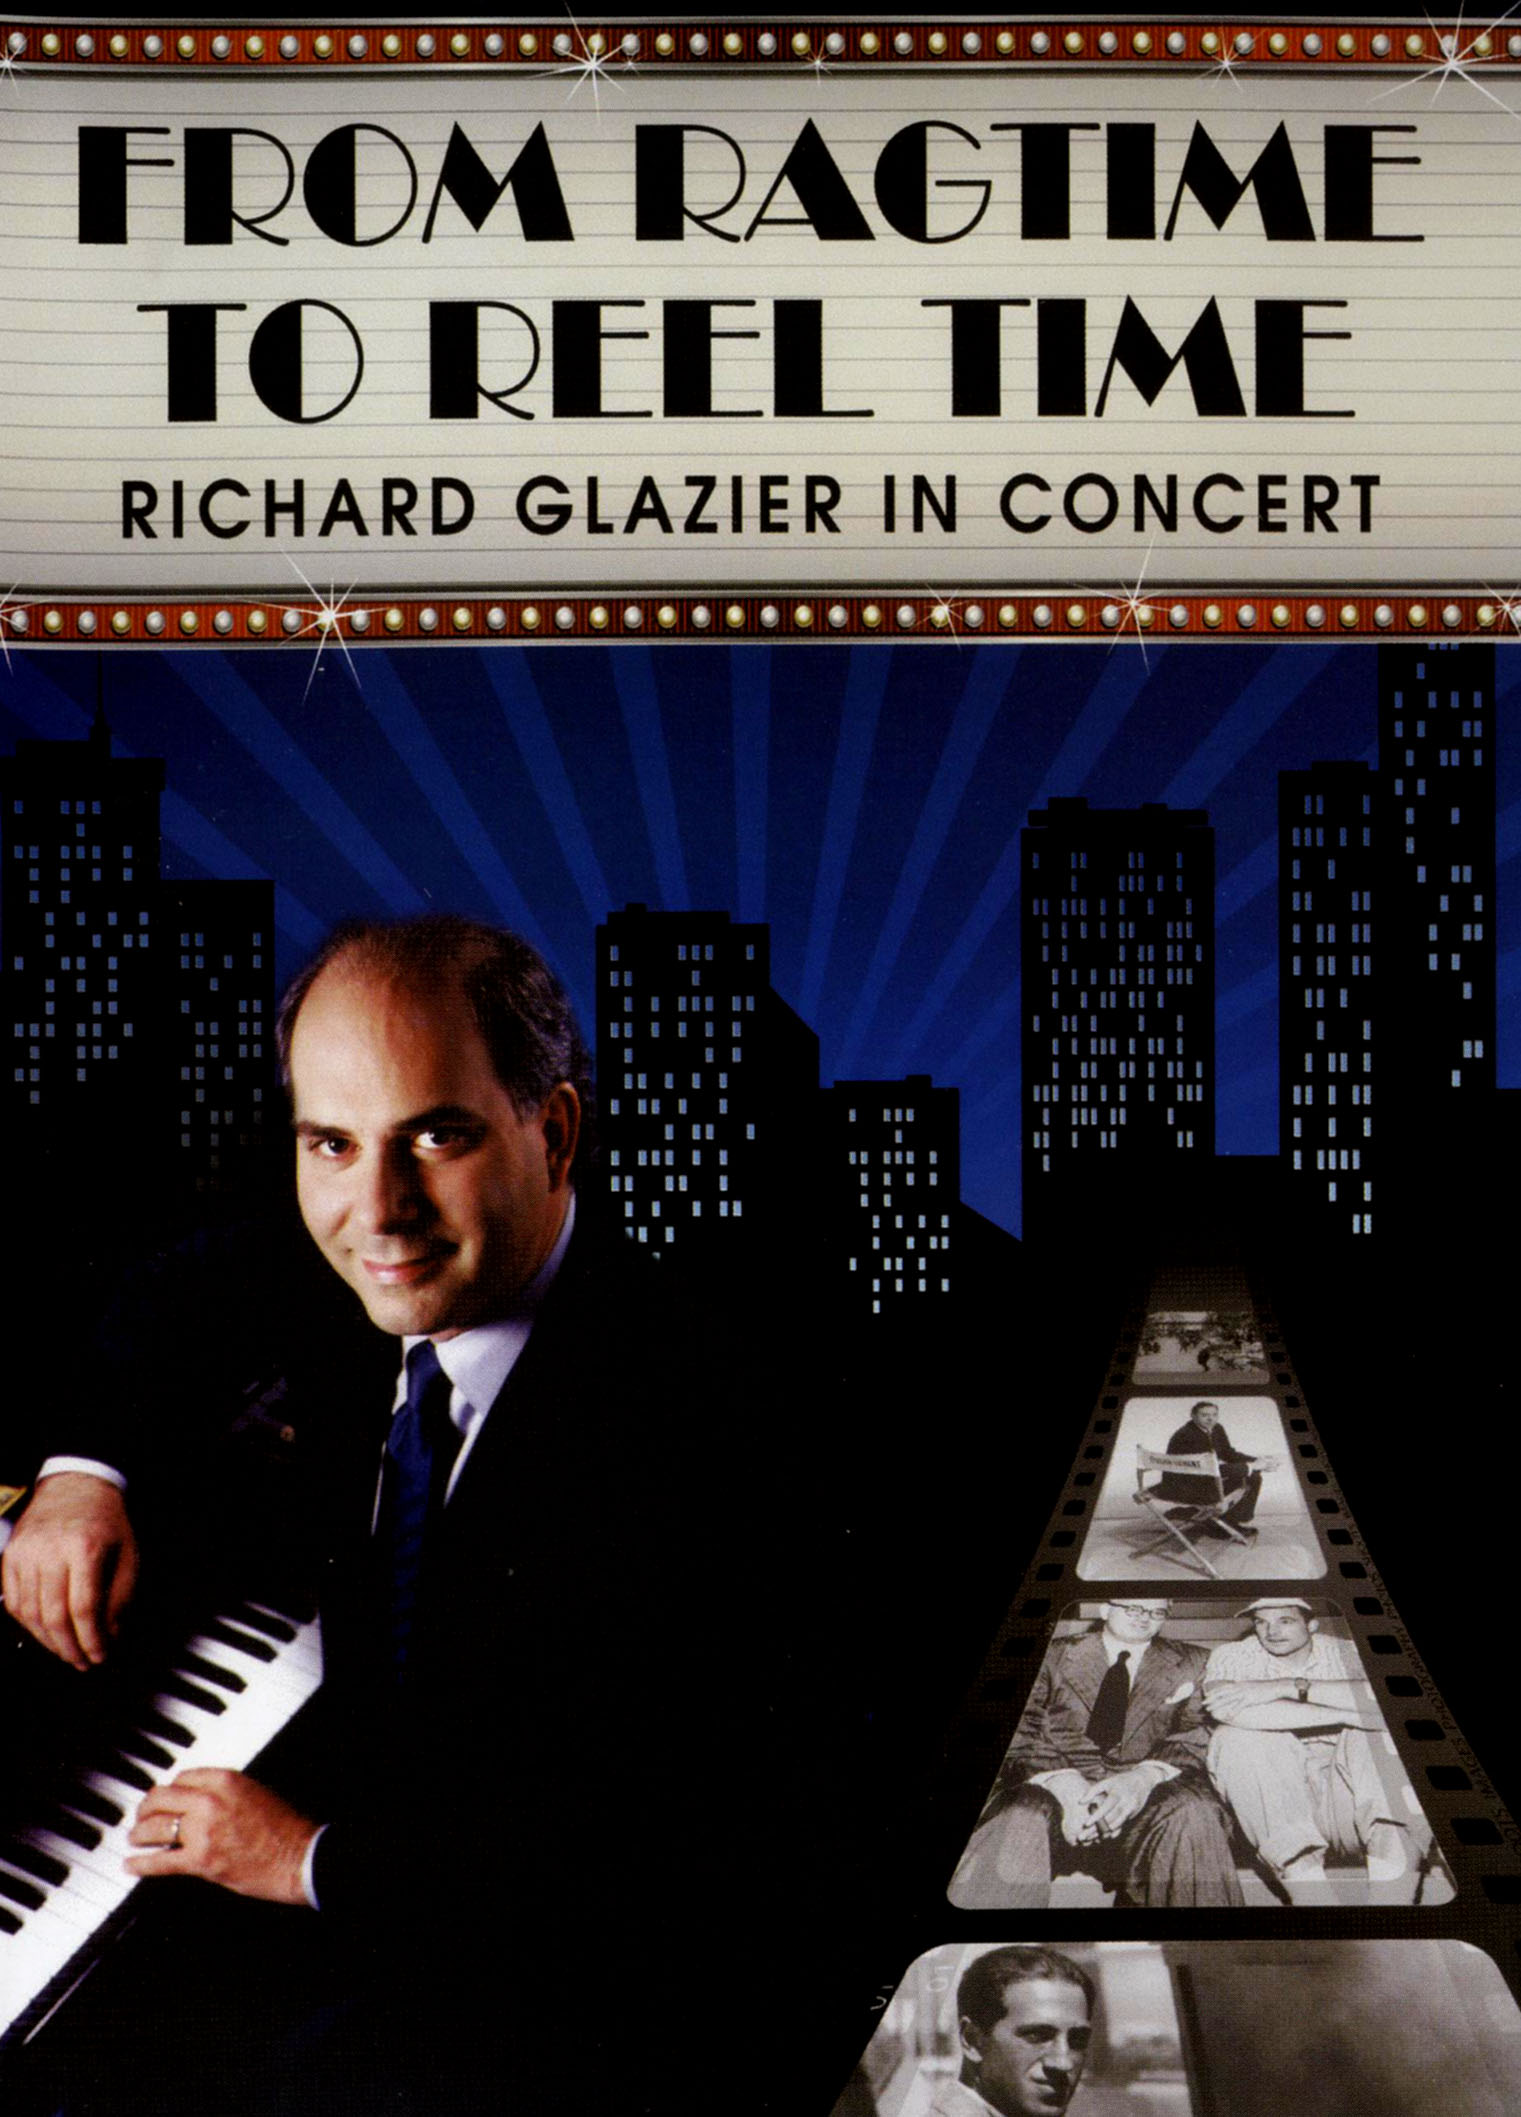 Richard Glazier in Concert: From Ragtime to Reel Time